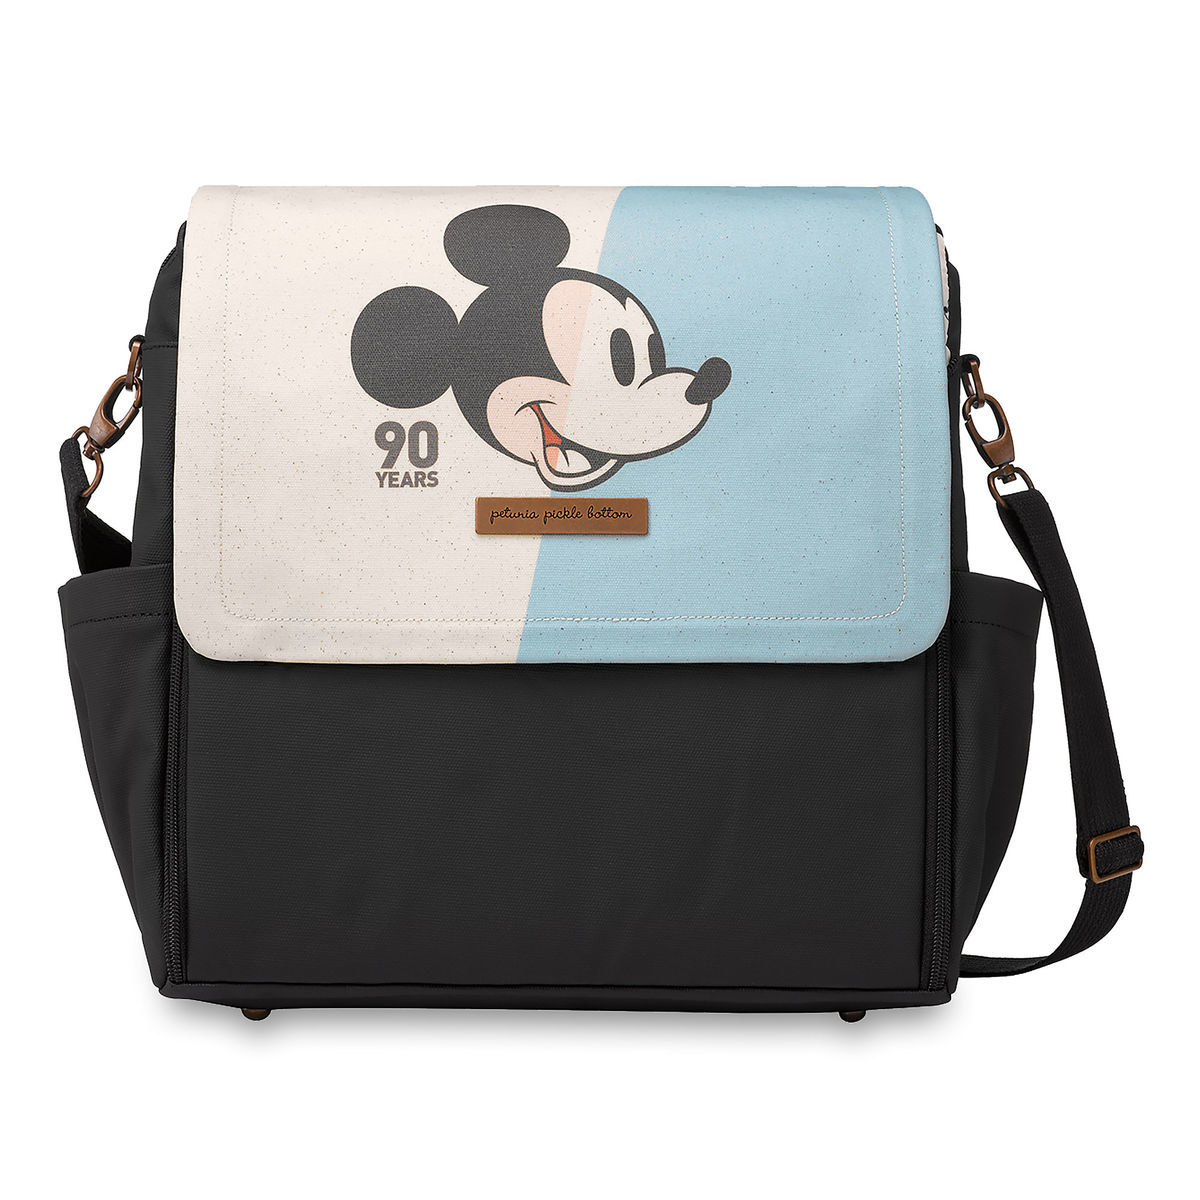 Product Image Of Mickey Mouse Boxy Diaper Backpack By Petunia Pickle Bottom 1